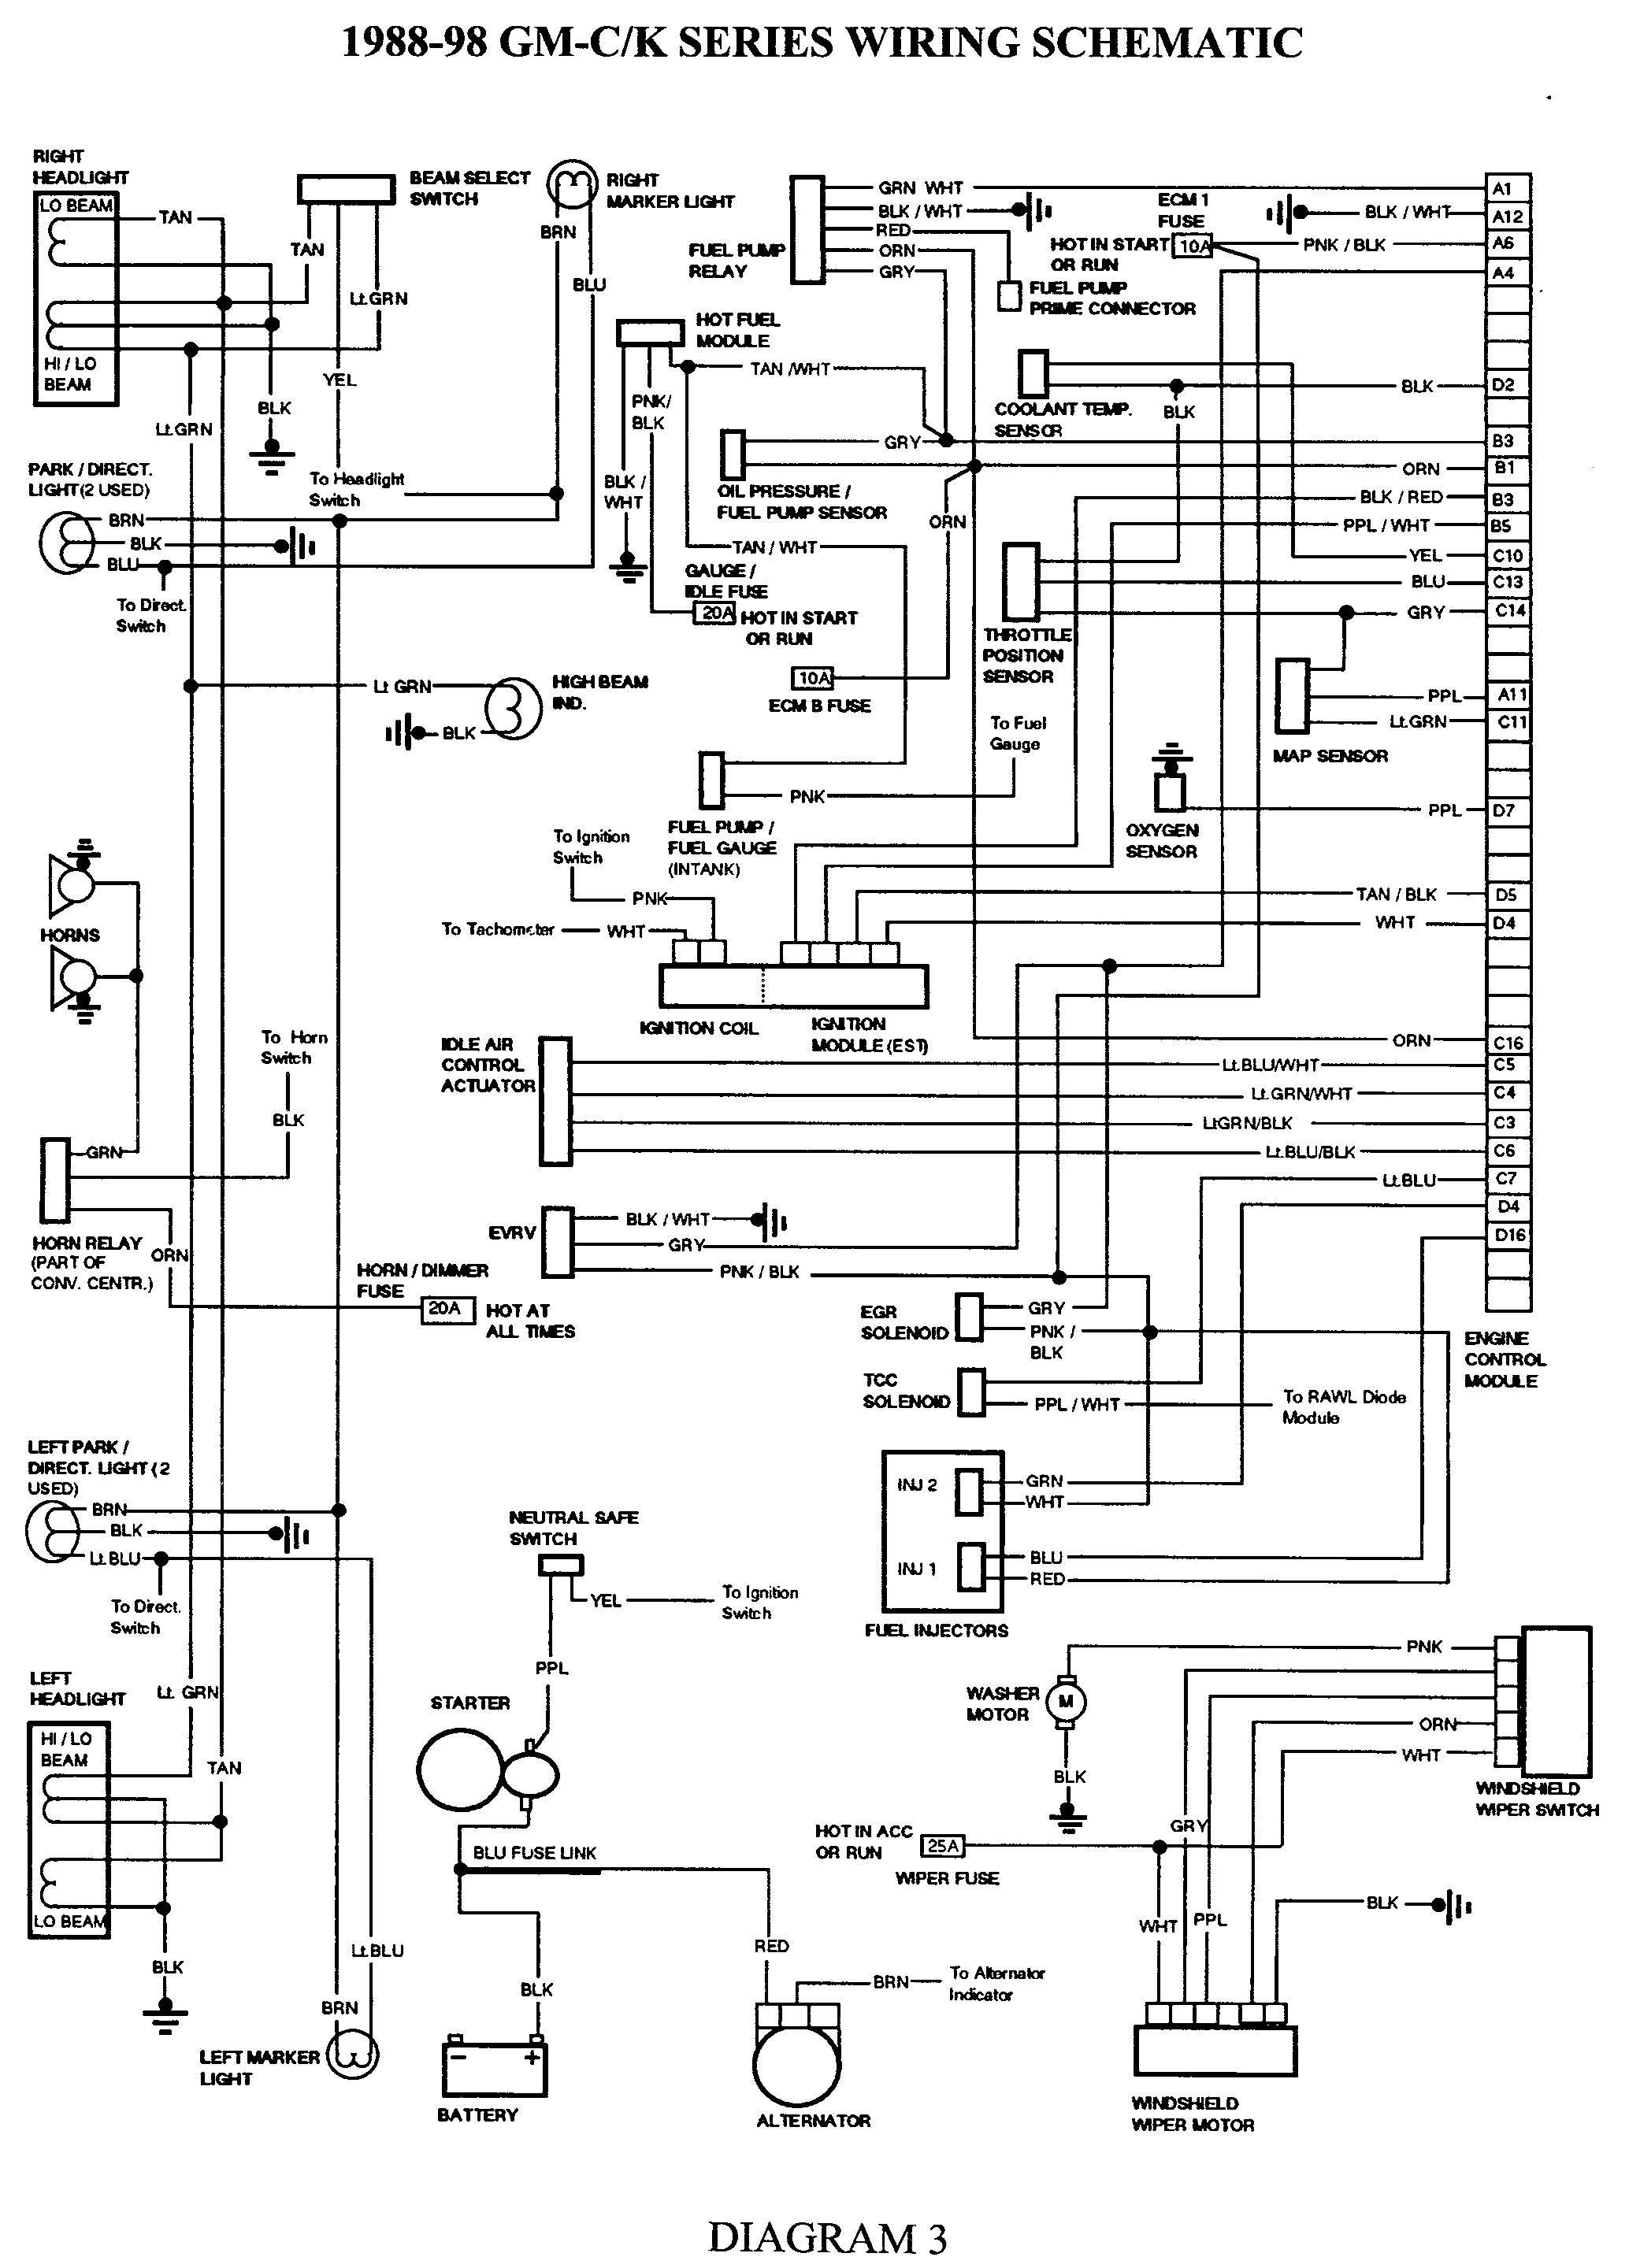 [SCHEMATICS_4HG]  VV_0024] Chevy S10 Fuel Line Download Diagram | 1999 S10 Fuel Pump Wiring Diagram |  | Weveq Epete Isra Mohammedshrine Librar Wiring 101